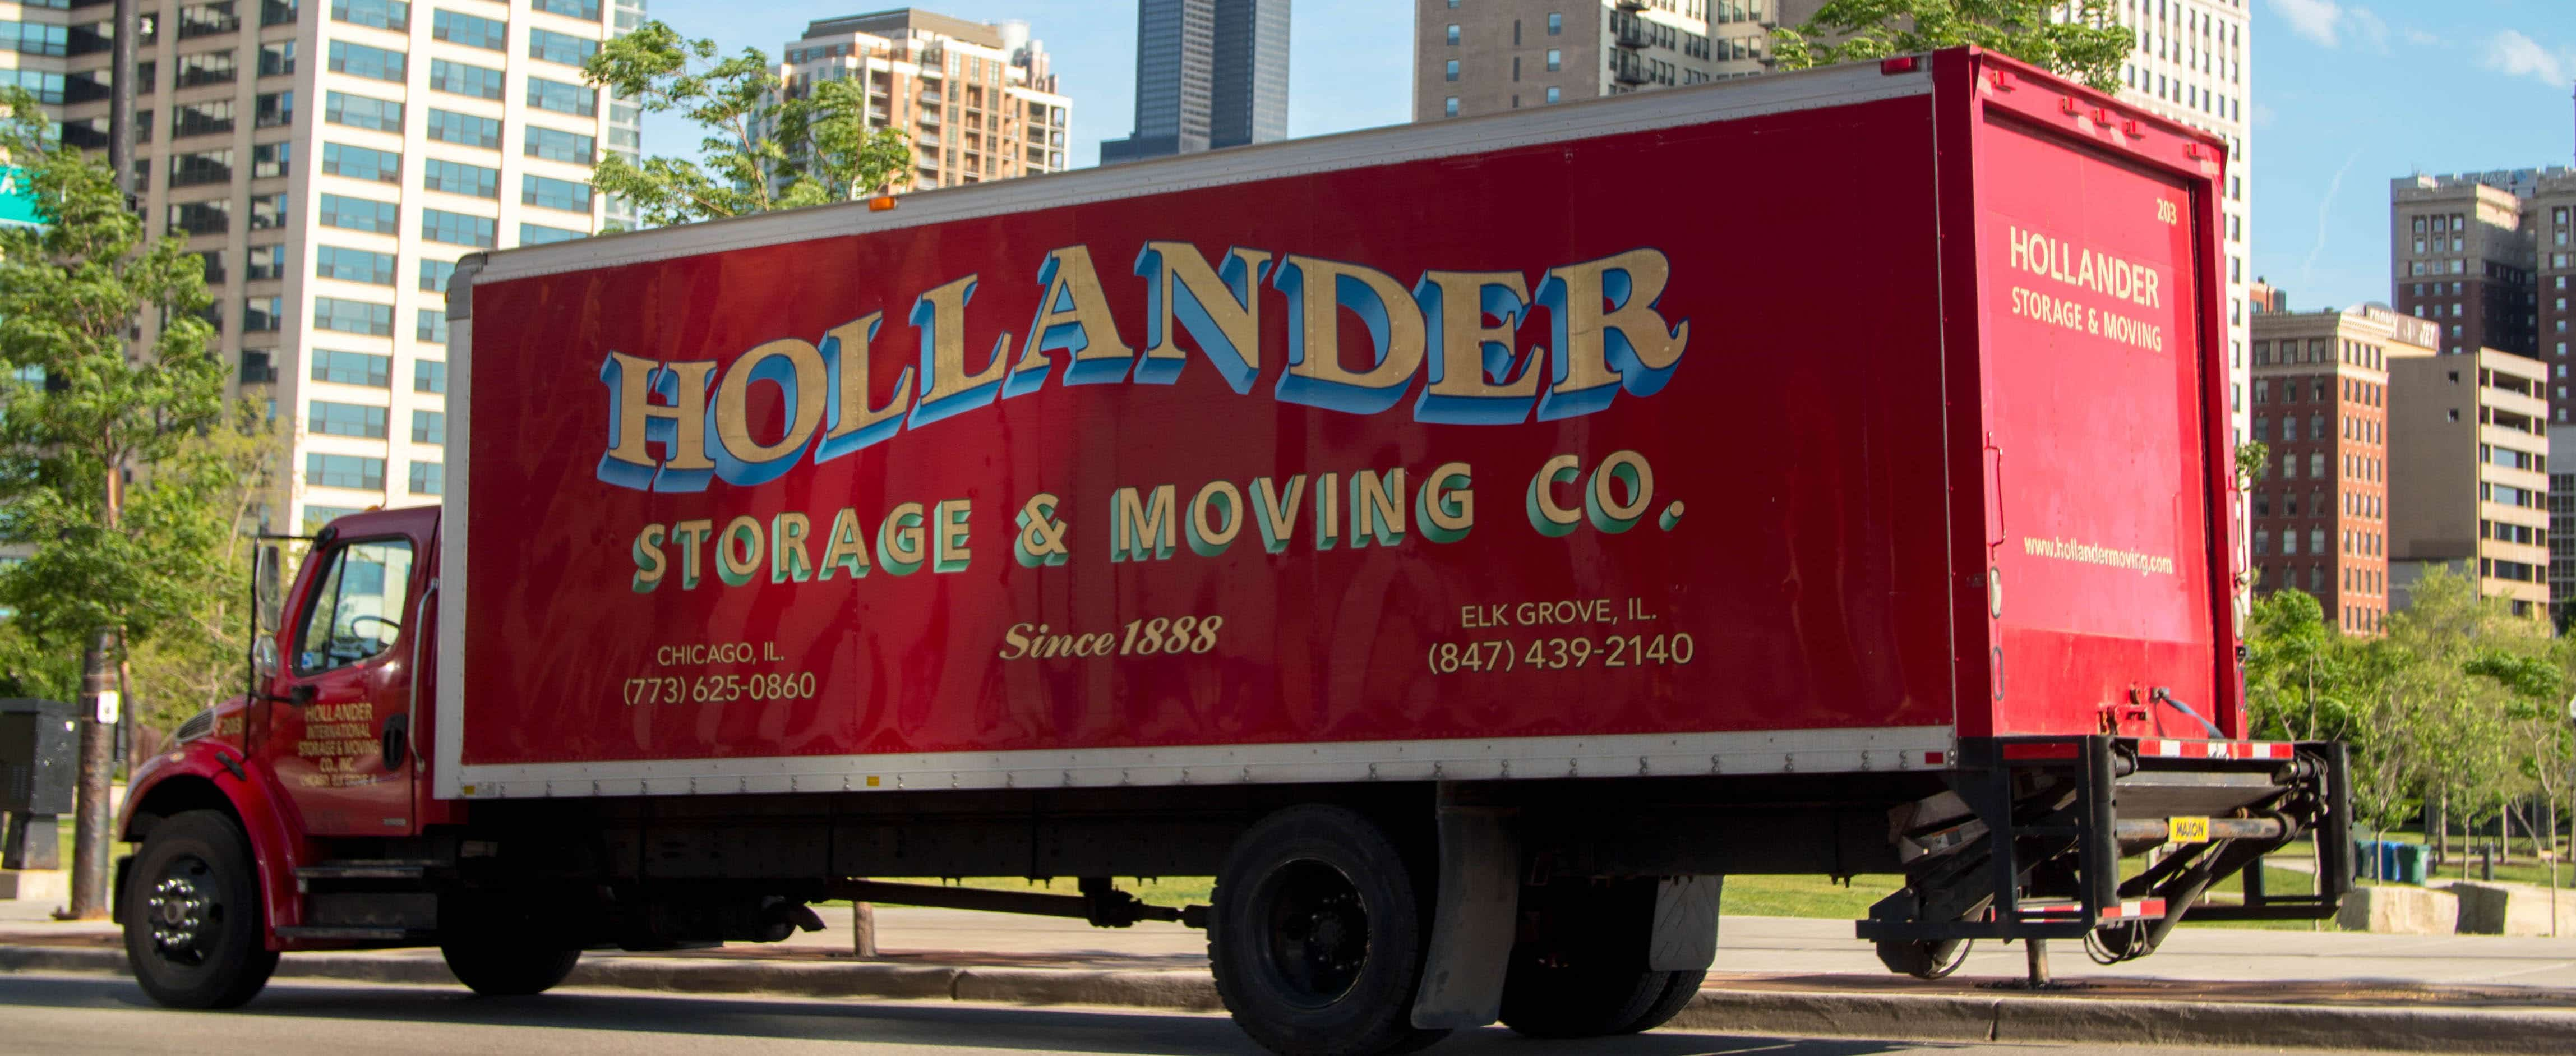 Hollander Storage and Moving Truck